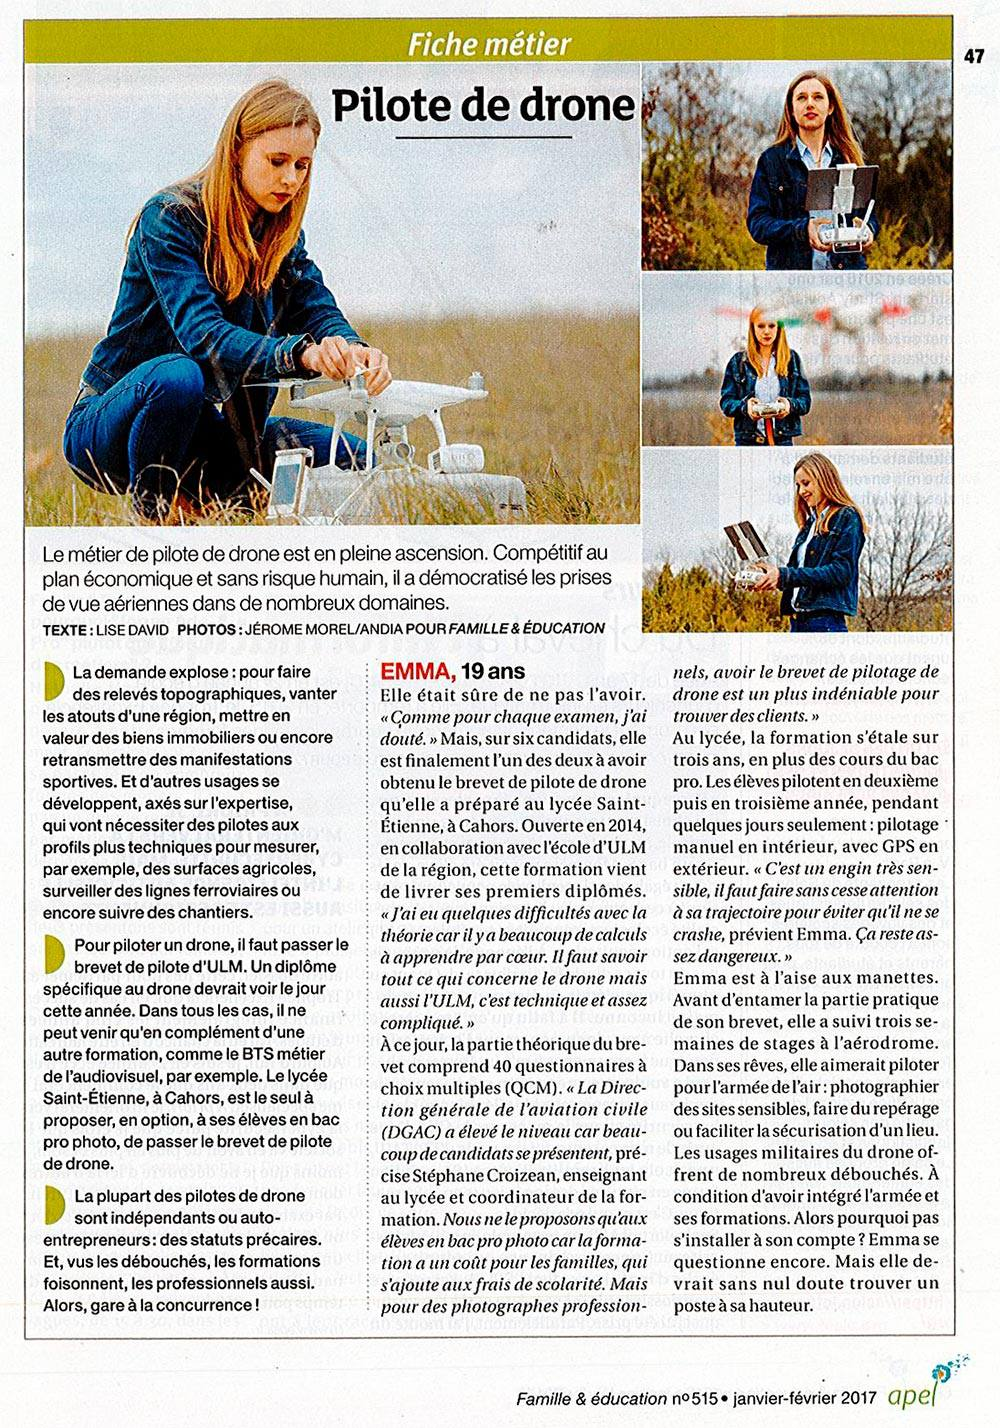 article_telepilote_drone_bac_professionnel_photographe_lycee_st_etienne_cahors